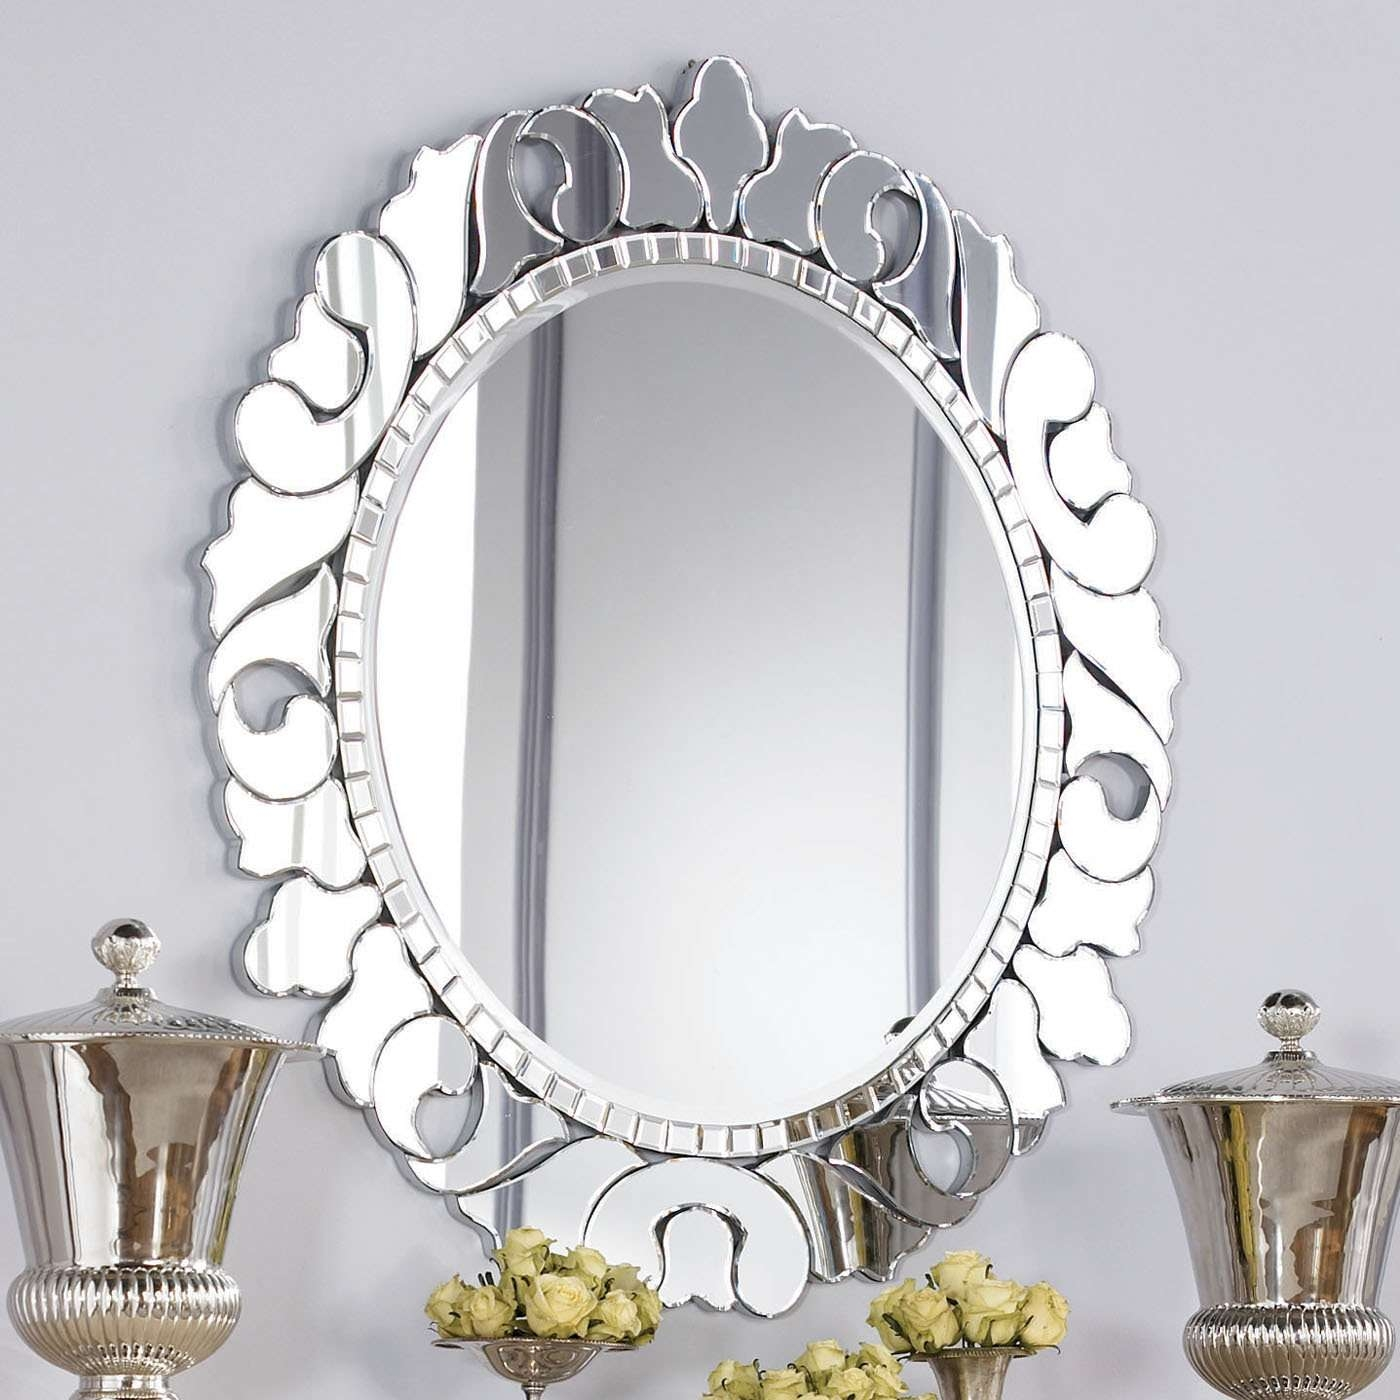 Beautiful Mirrors Mirror Designs Expensive Mirrors Vintage Mirrors Intended For Expensive Mirrors (Image 6 of 15)